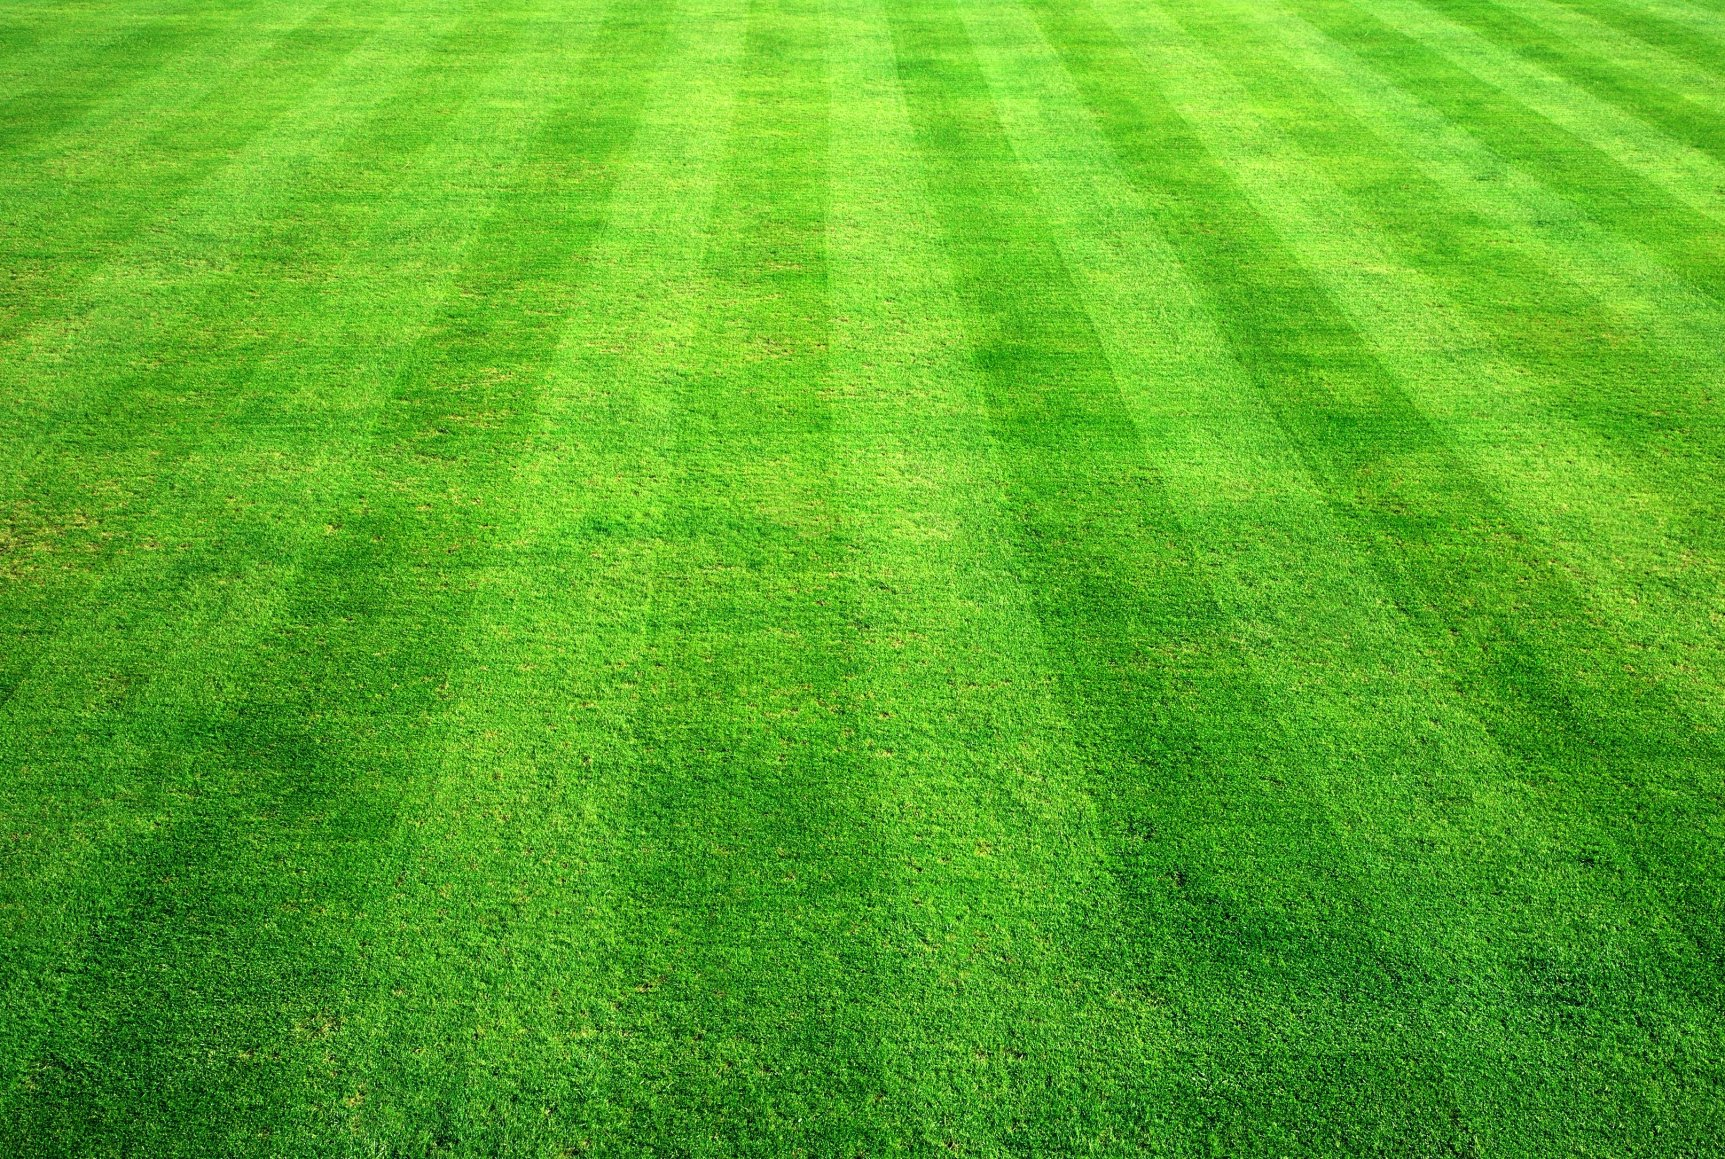 gridiron, green grass, background, texture, download photo, green grass texture